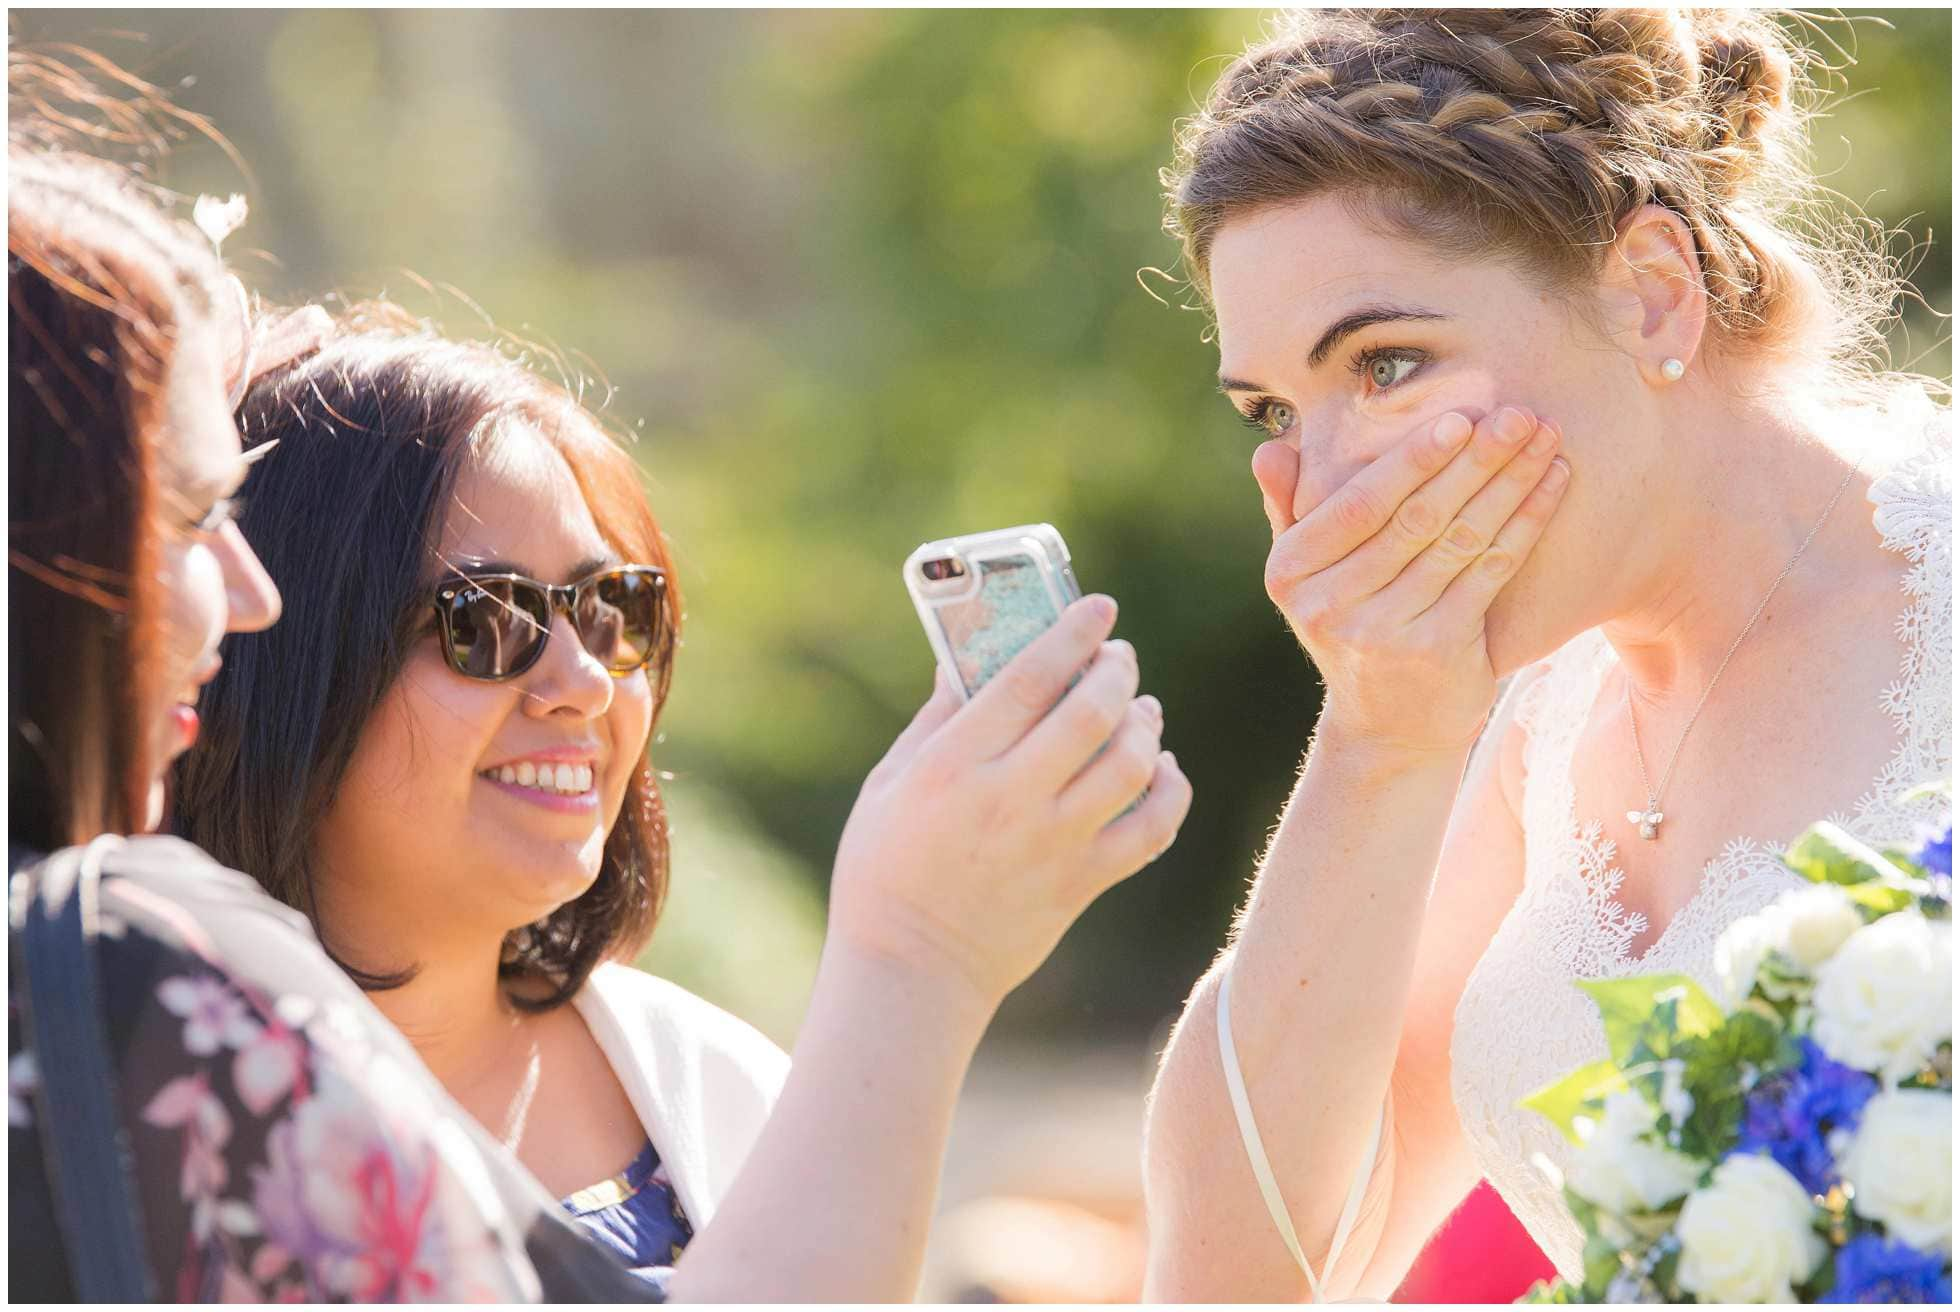 OMG moment with bride and mobile phone!